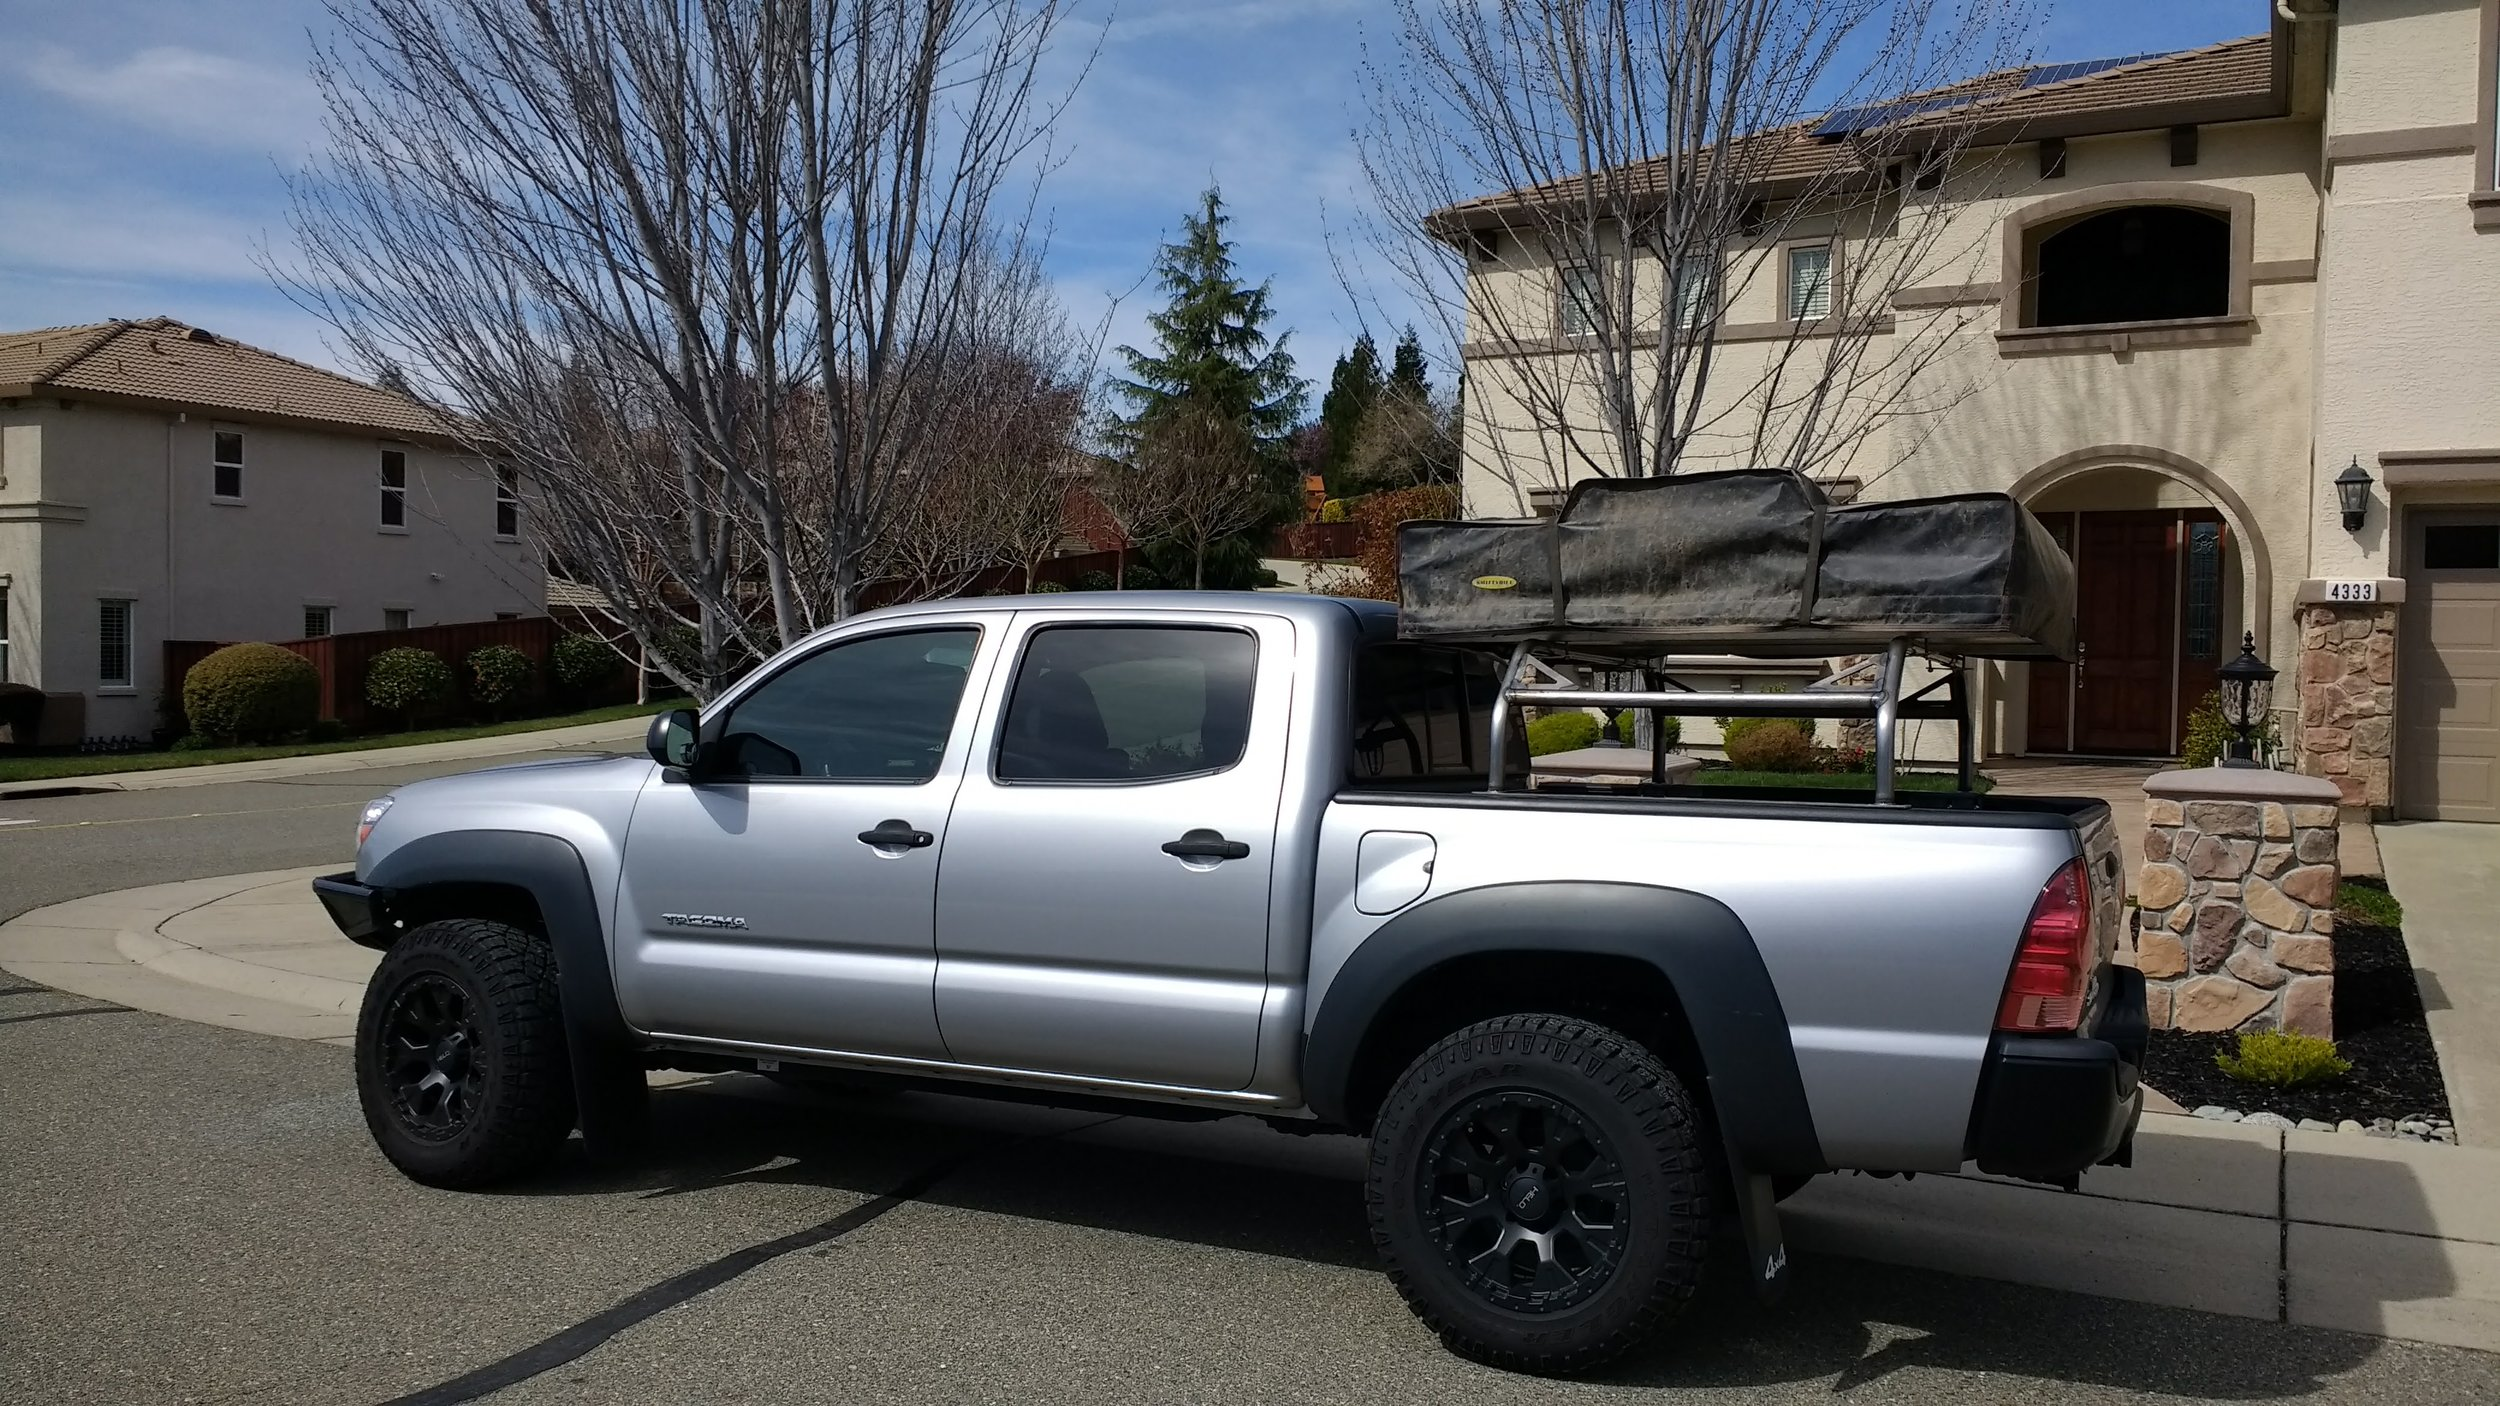 hot metal fab full length over the bed rack holds any rooftop tent fits large trucks hot metal fabrication